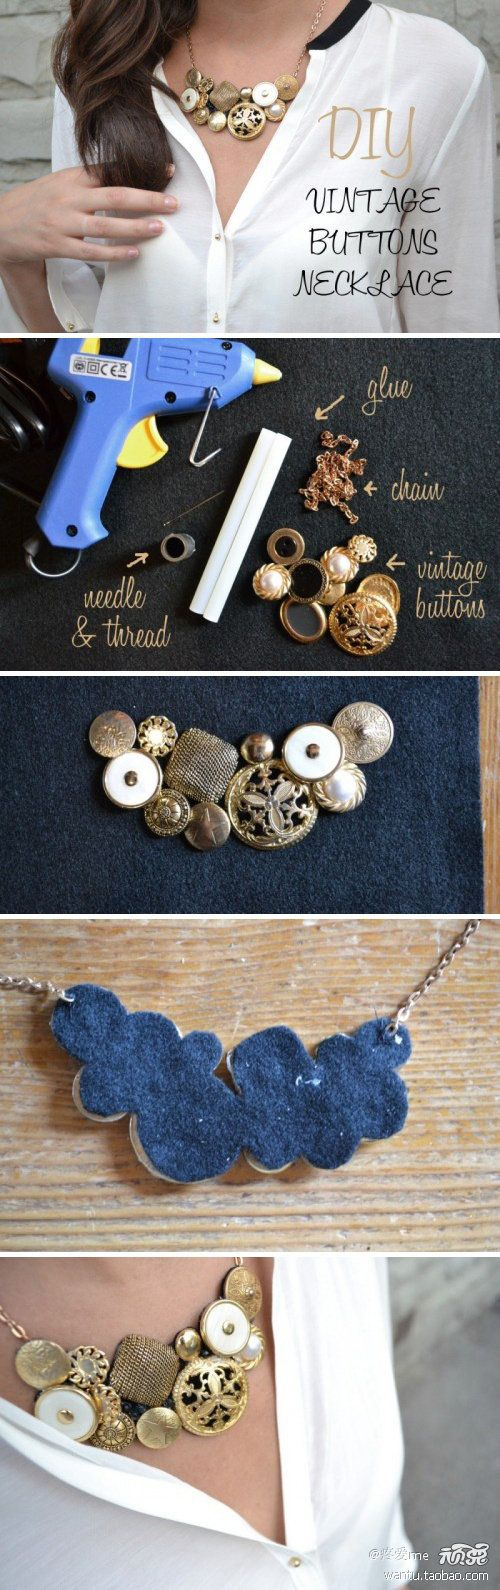 11 Easy DIY Buttons Jewelry Projects: Making Jewelry from